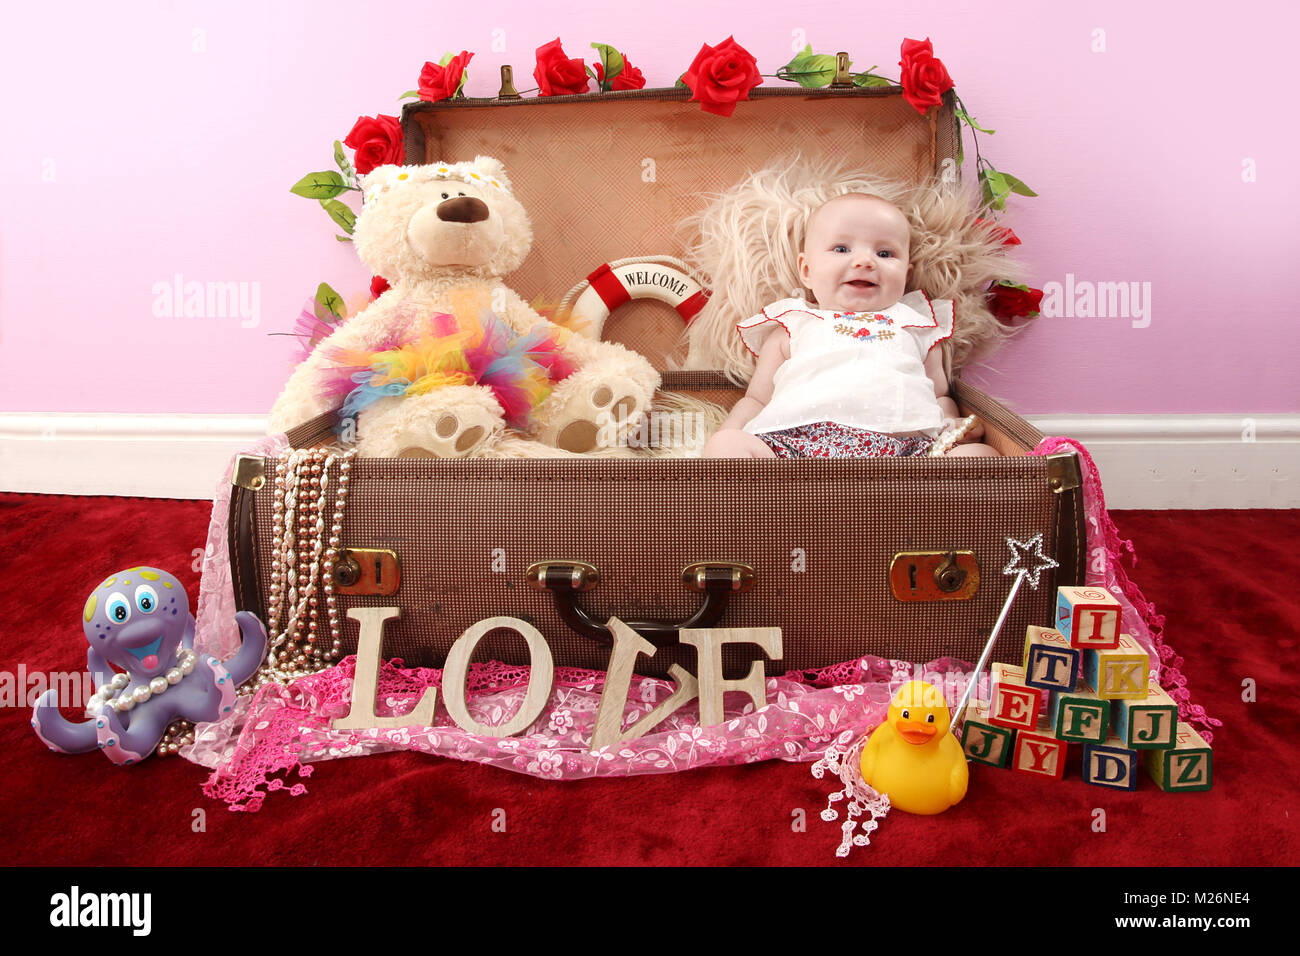 beautiful 3 month old baby girl happy playing in suitcase full of toys